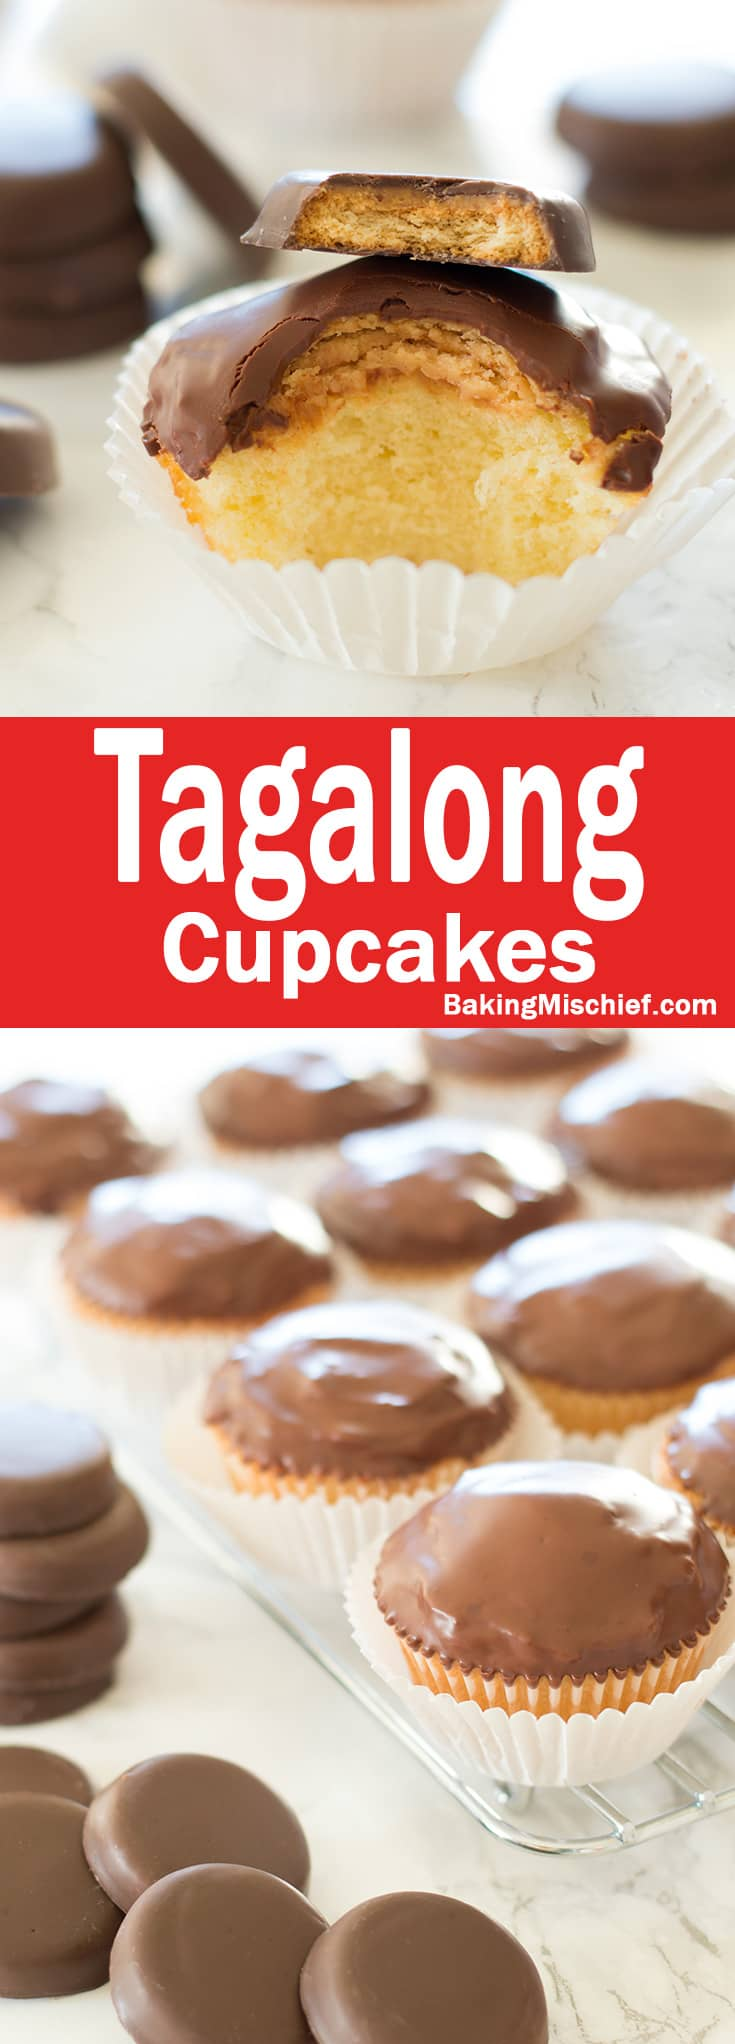 tagalong peanut butter parfaits recipes dishmaps tagalong peanut ...